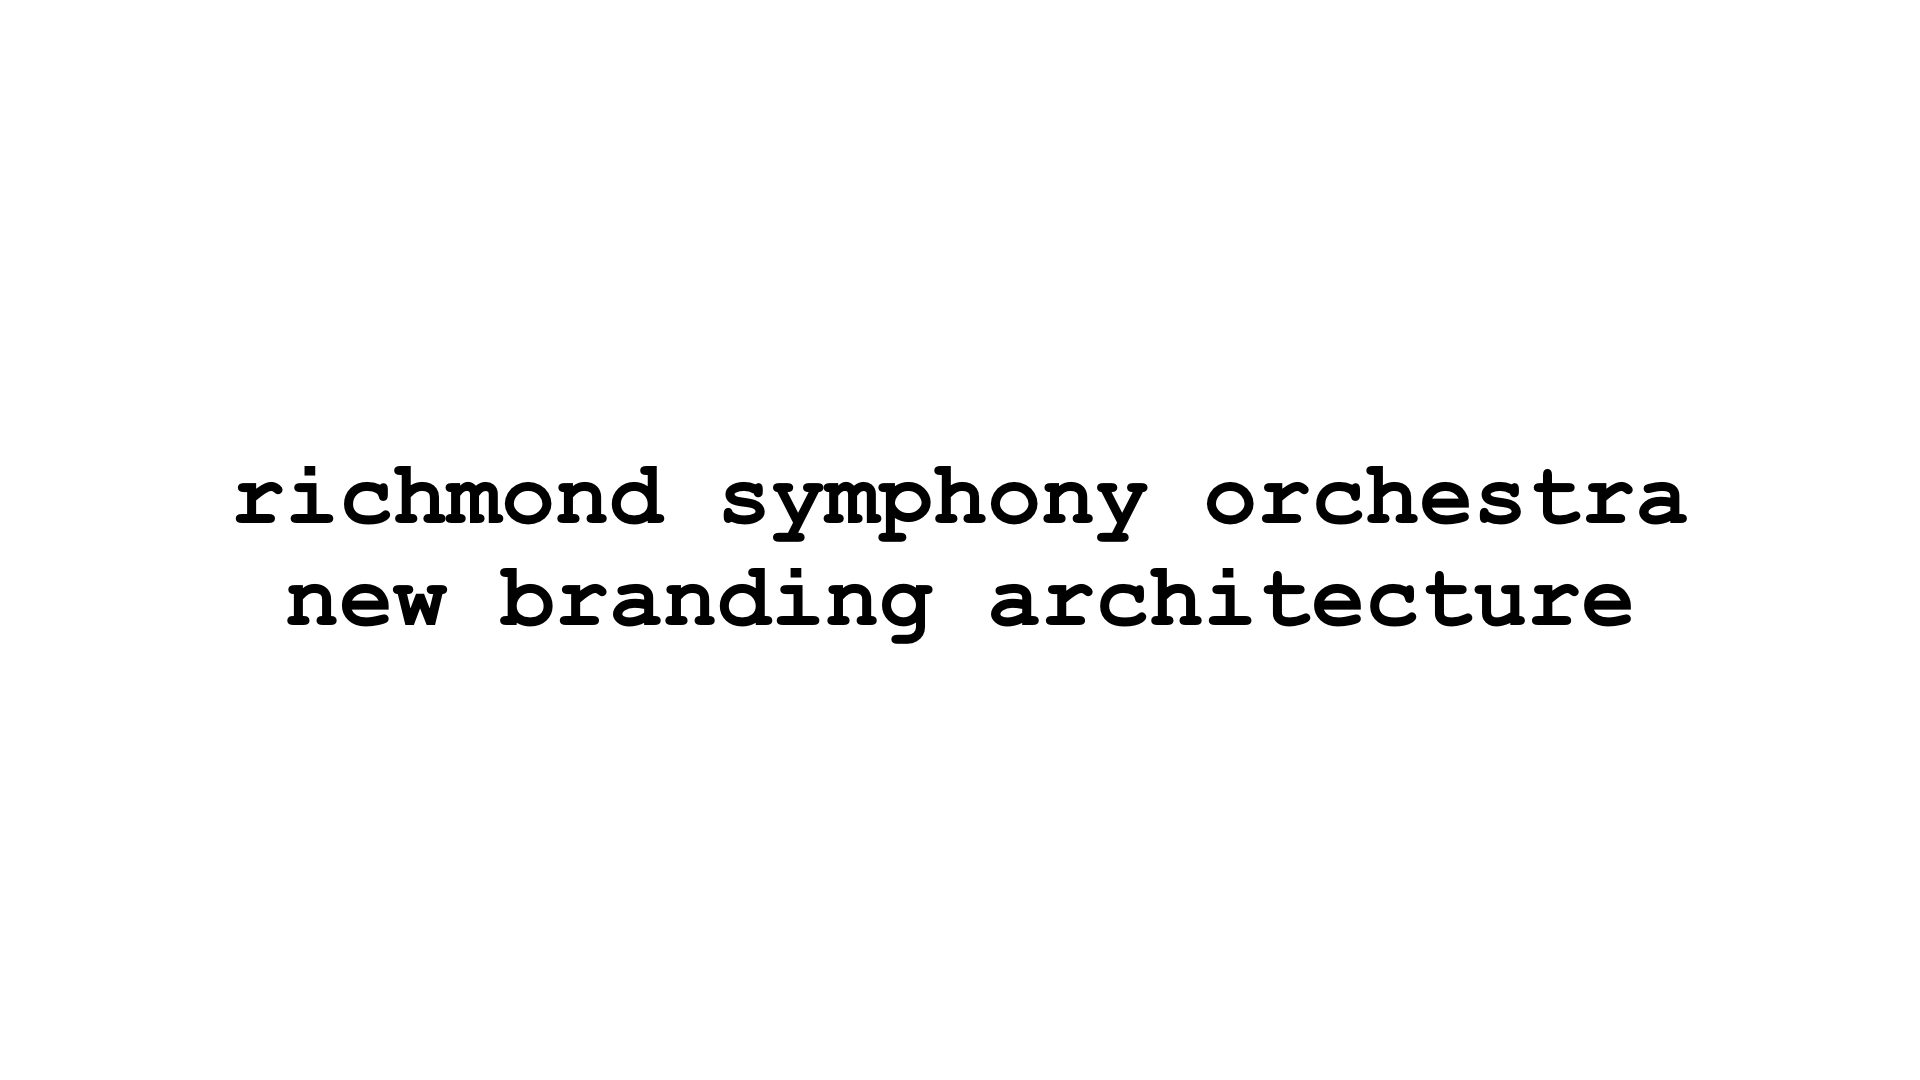 pro-bono work  fall 2016  brand architecture, brand experience, multidisciplinary team, live client, side project